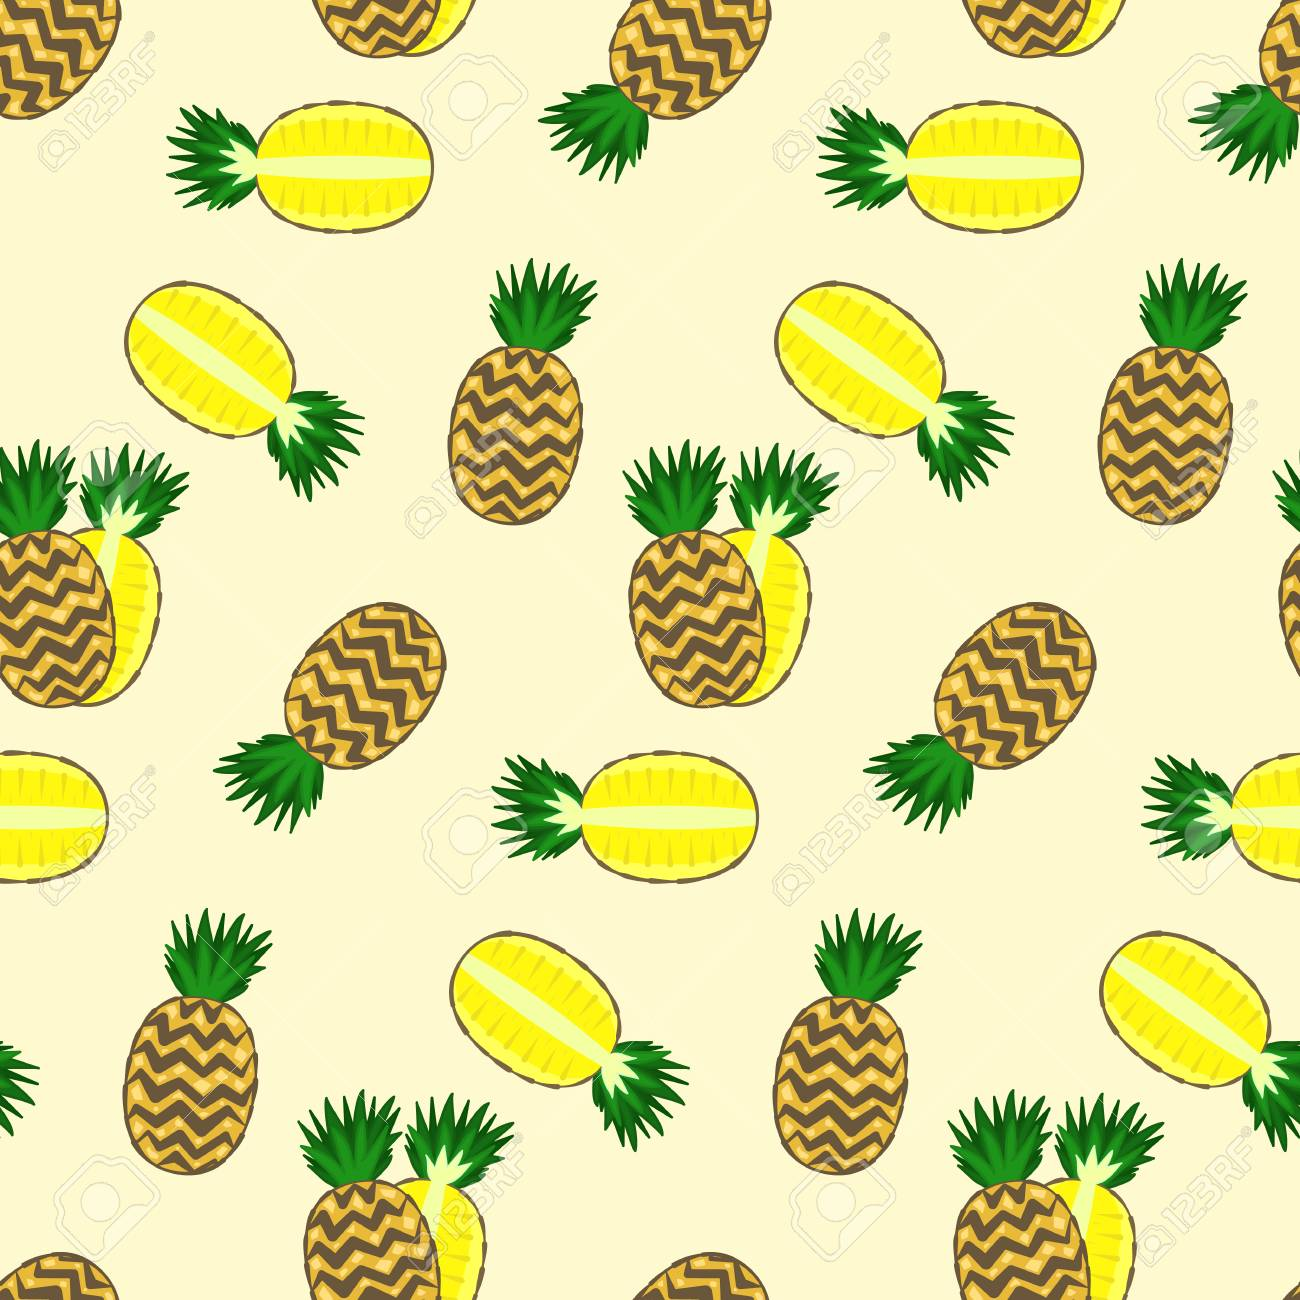 Bright Colorful Cartoon Full And Half Pineapple Seamless Pattern Nice Vector Summer Exotic Fruits Texture